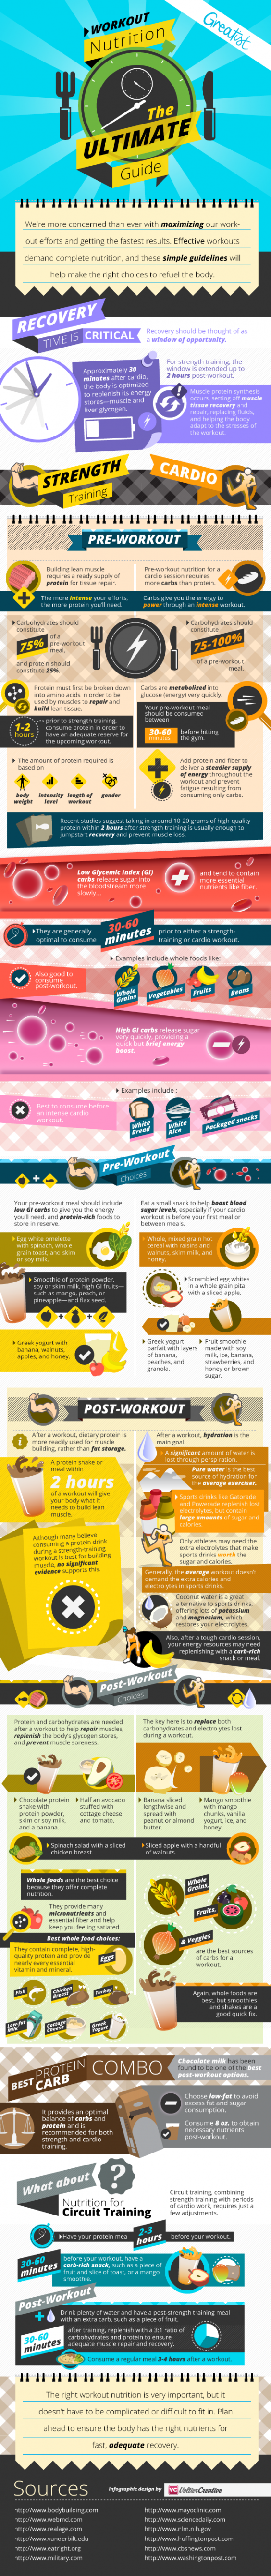 The Complete Guide To Workout Nutriton Infographic